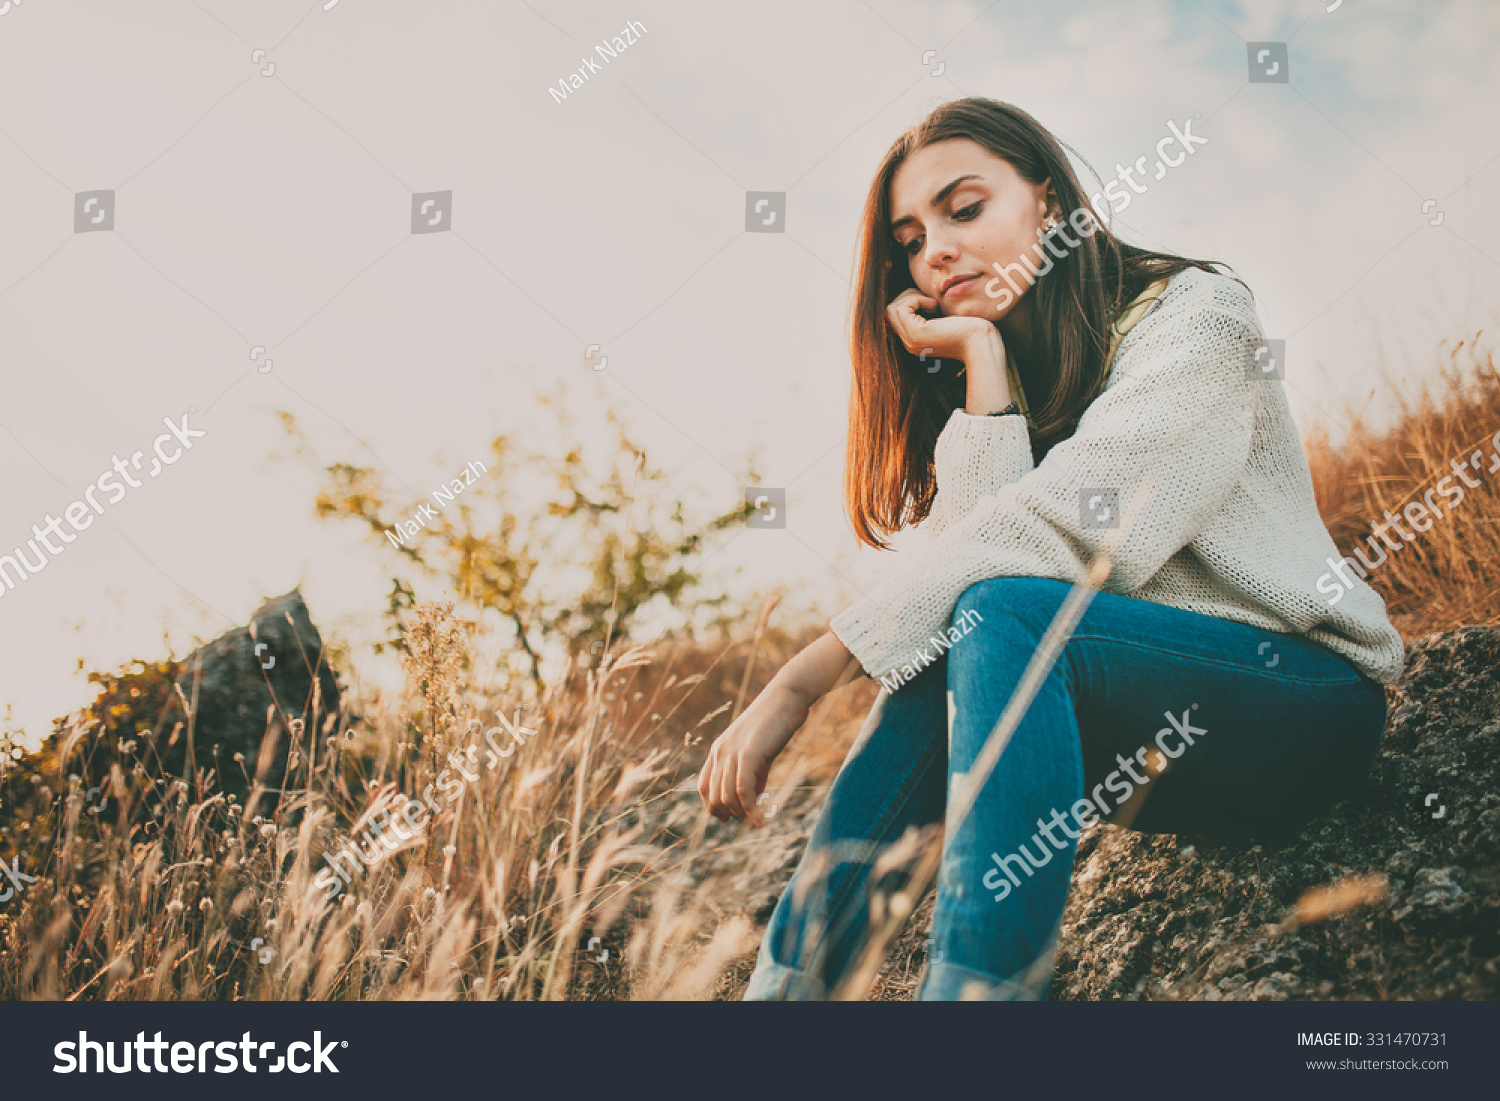 Image result for girl sitting and thinking